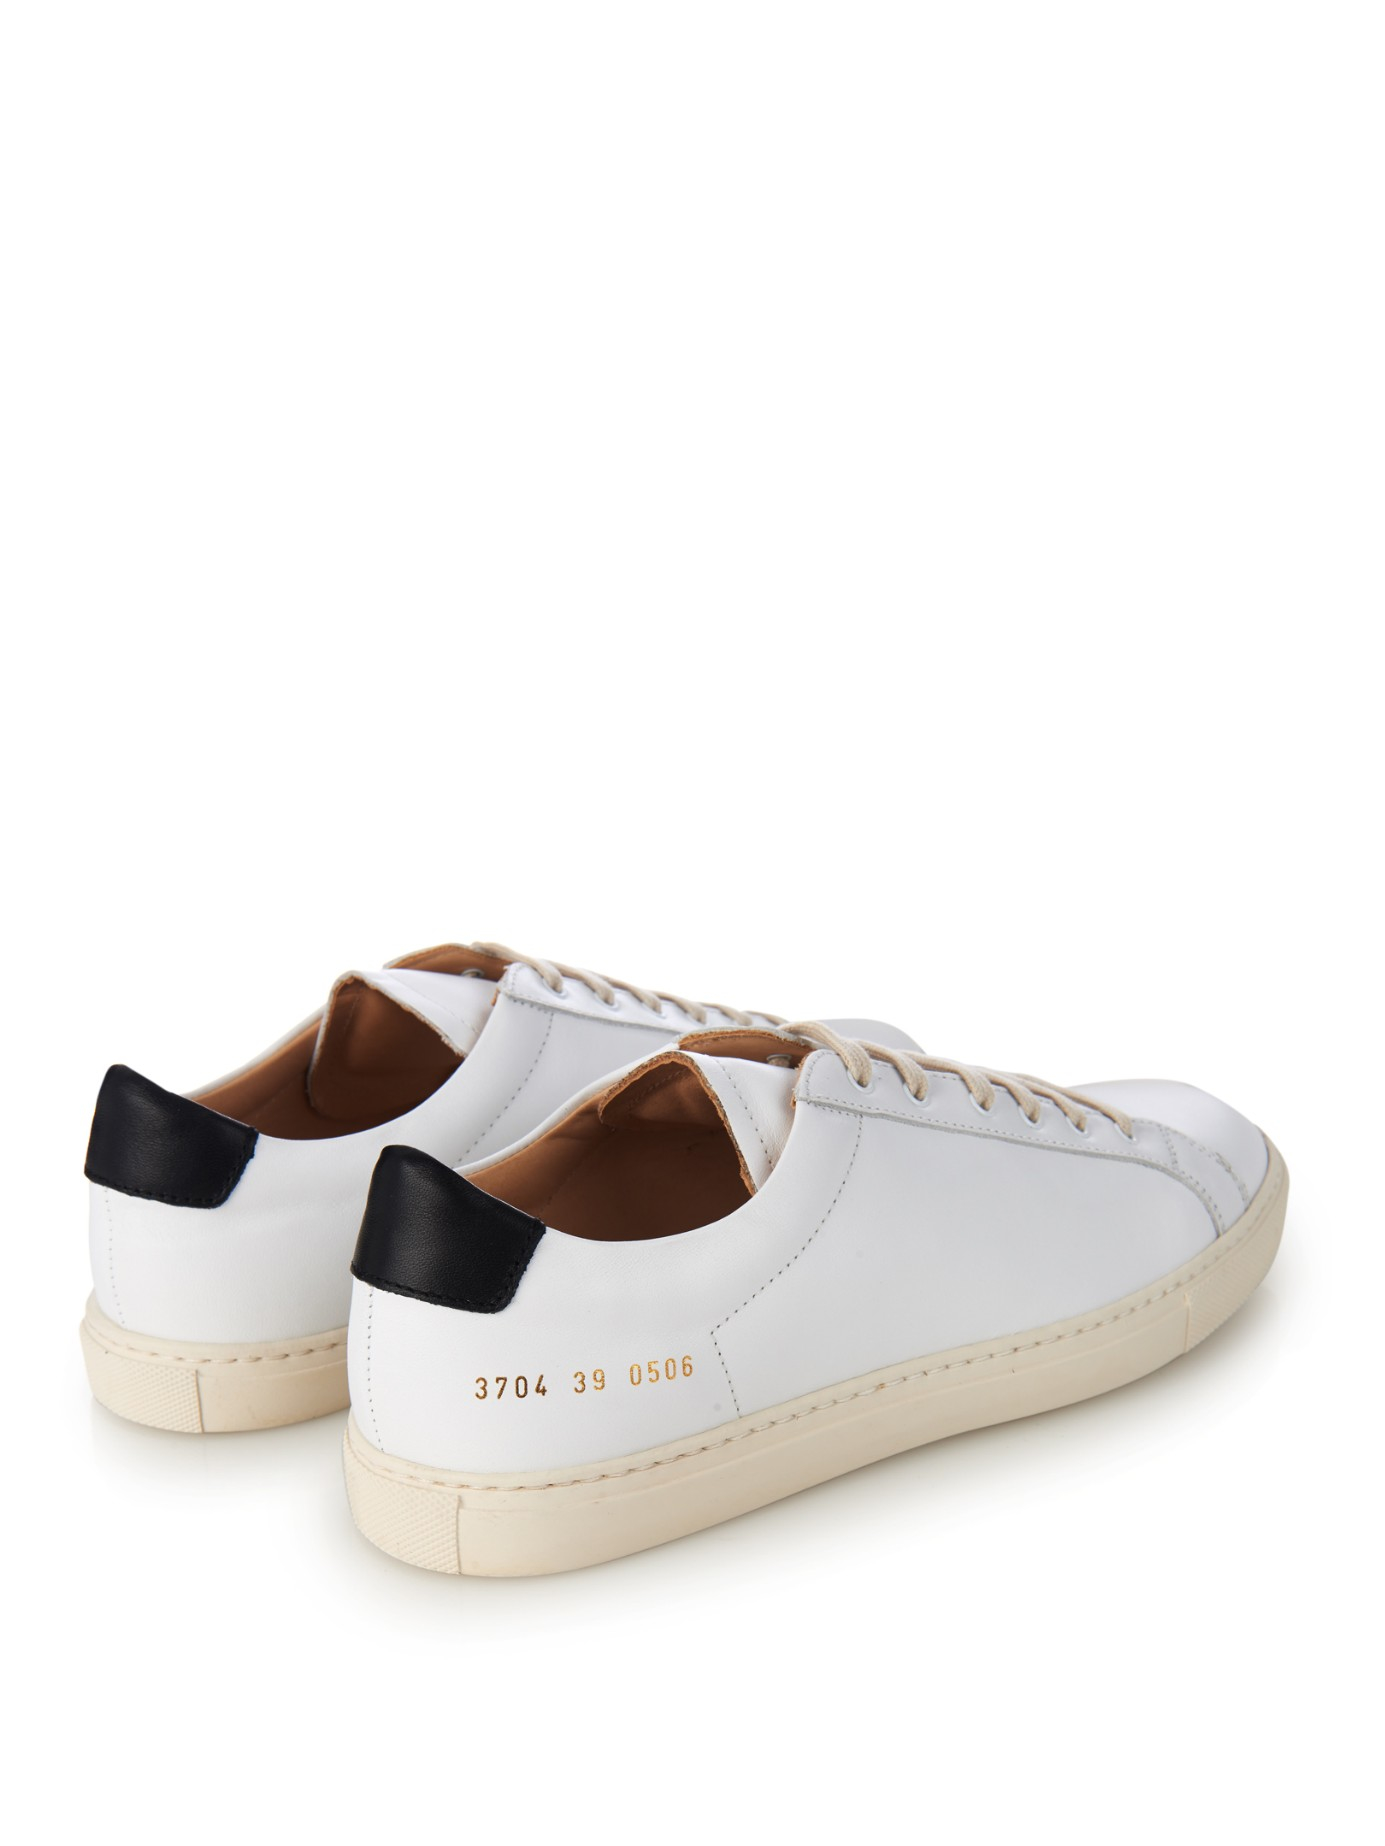 common projects achilles retro leather low top sneakers in white lyst. Black Bedroom Furniture Sets. Home Design Ideas